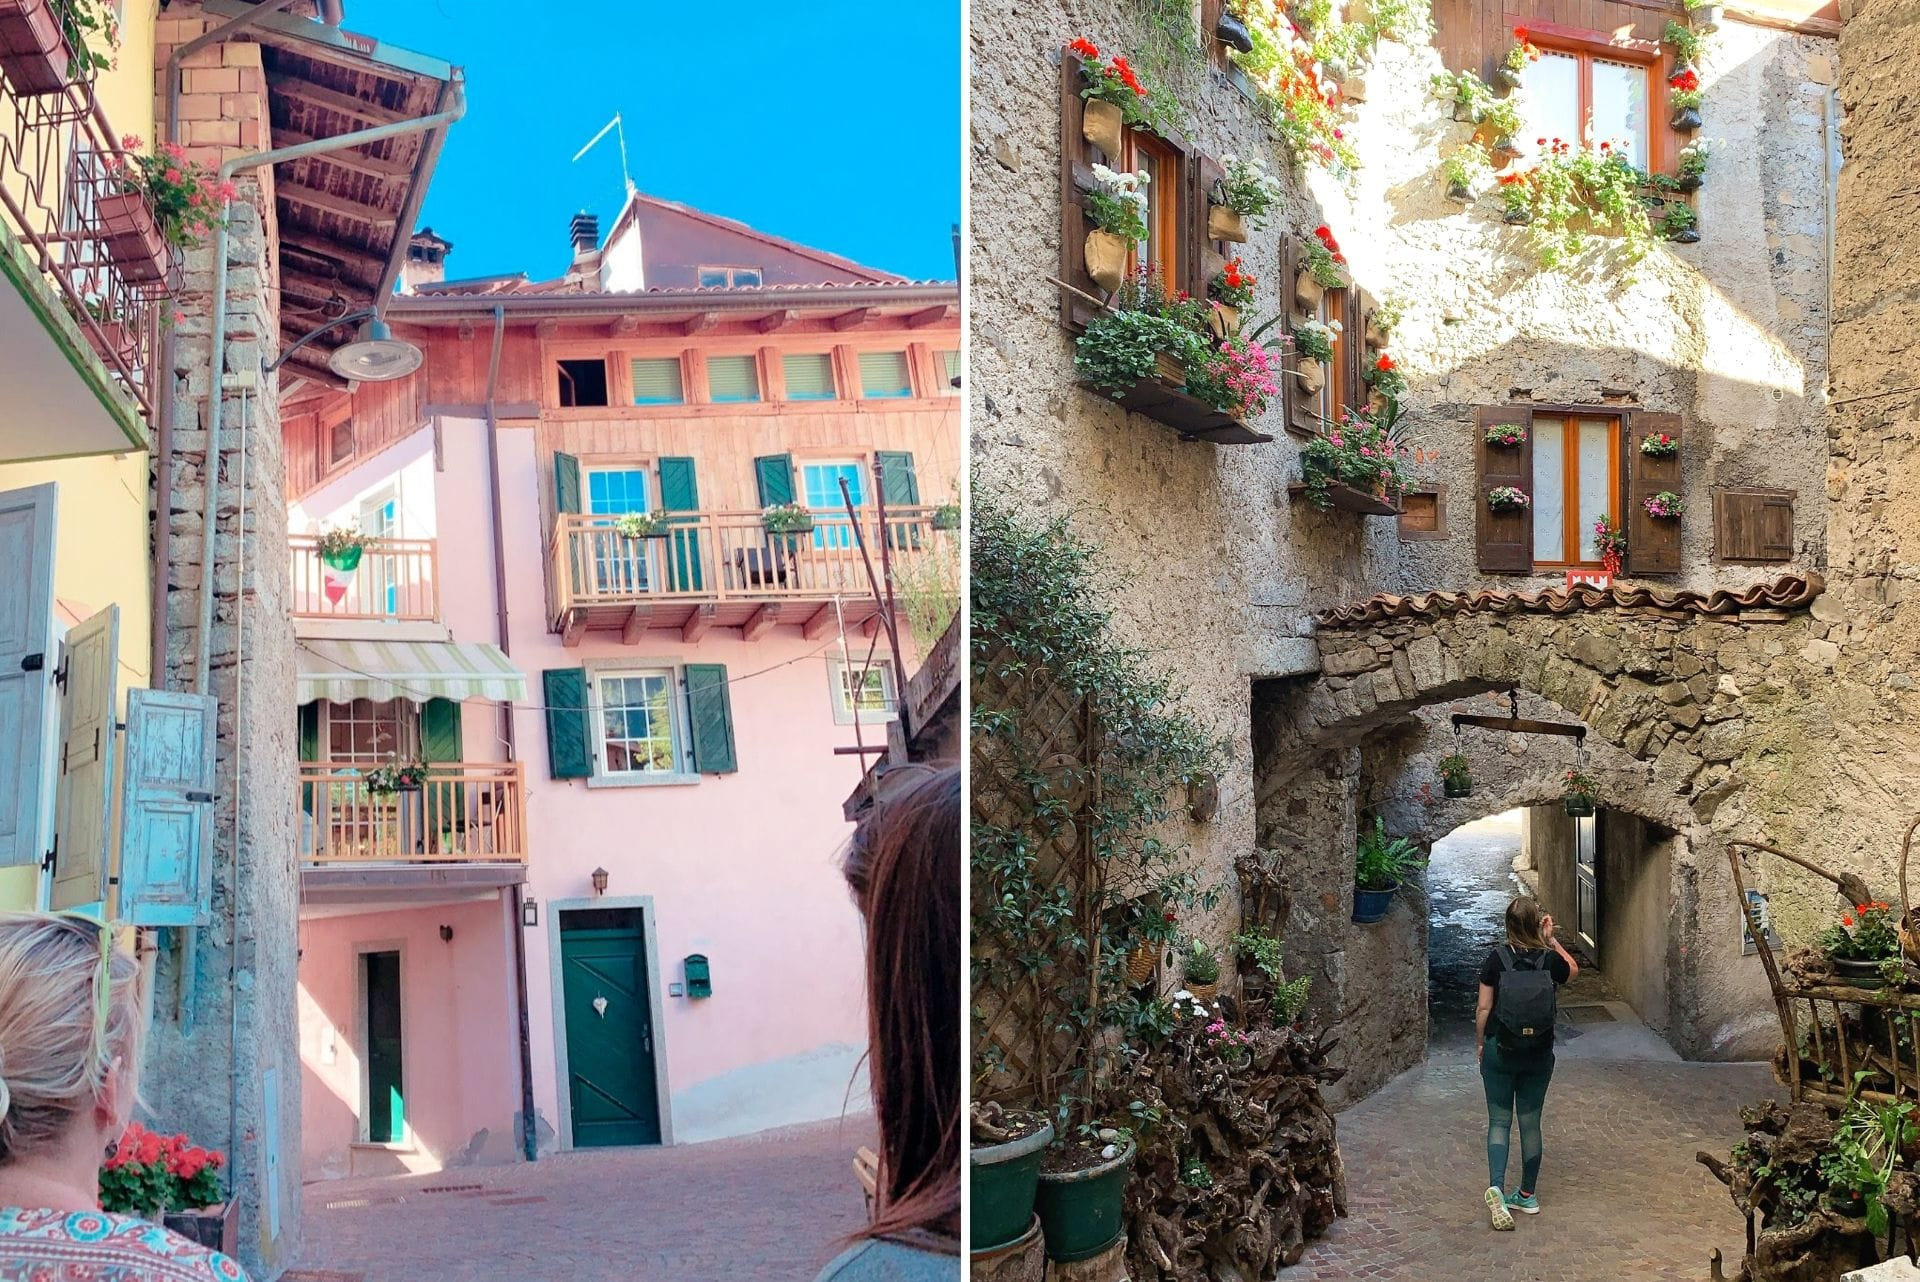 pretty-italian-village-with-pink-buildings-passageways-and-flowers-bondone